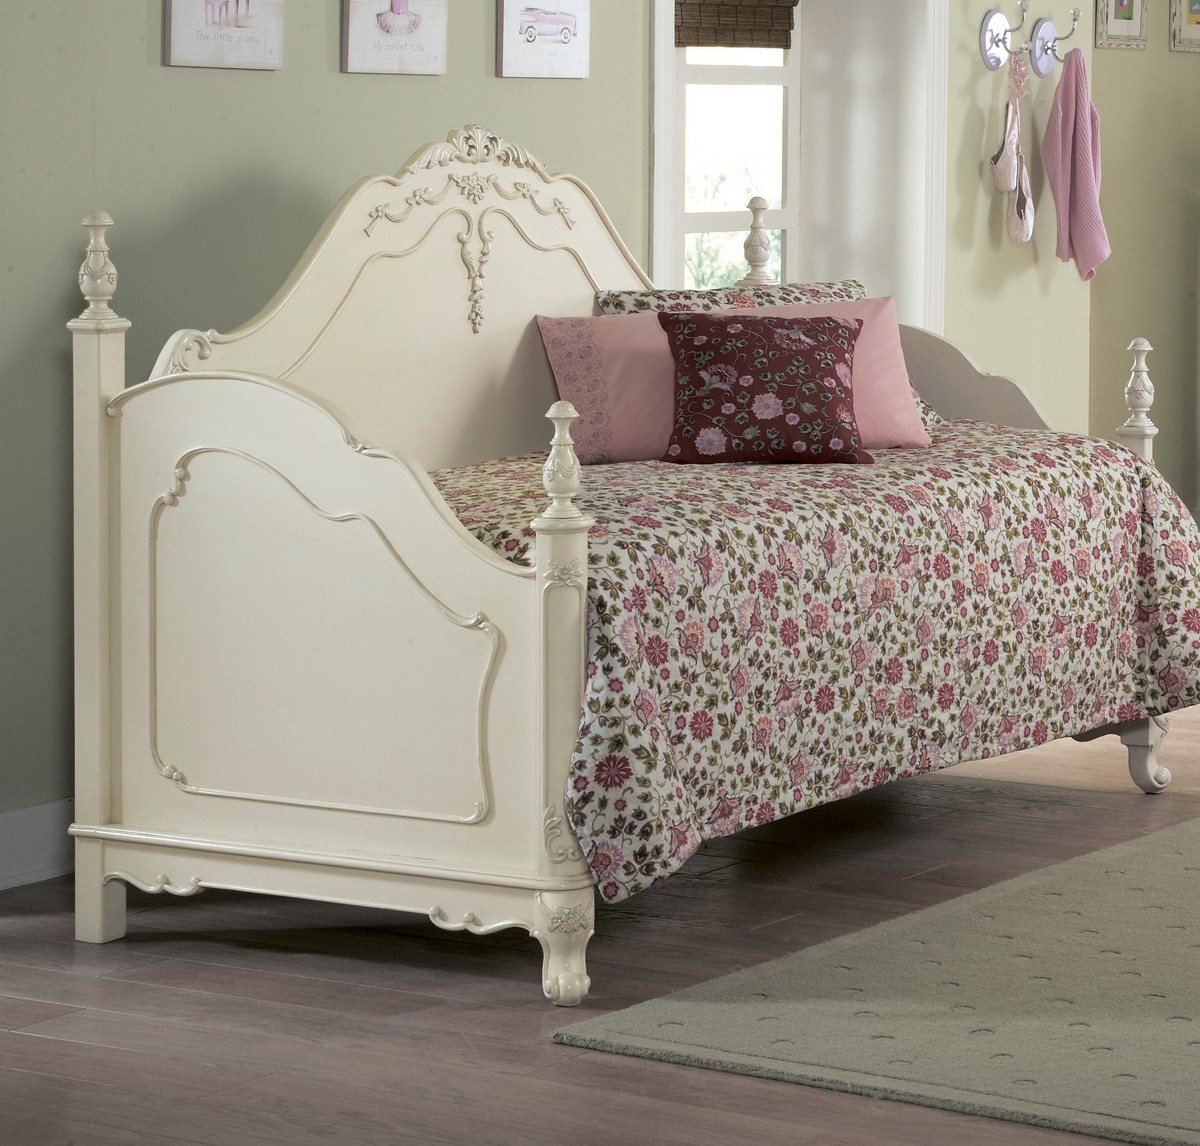 White metal daybed with floral finials - Amazon Com Homelegance Cinderella Wood Daybed In Ecru Finish Kitchen Dining